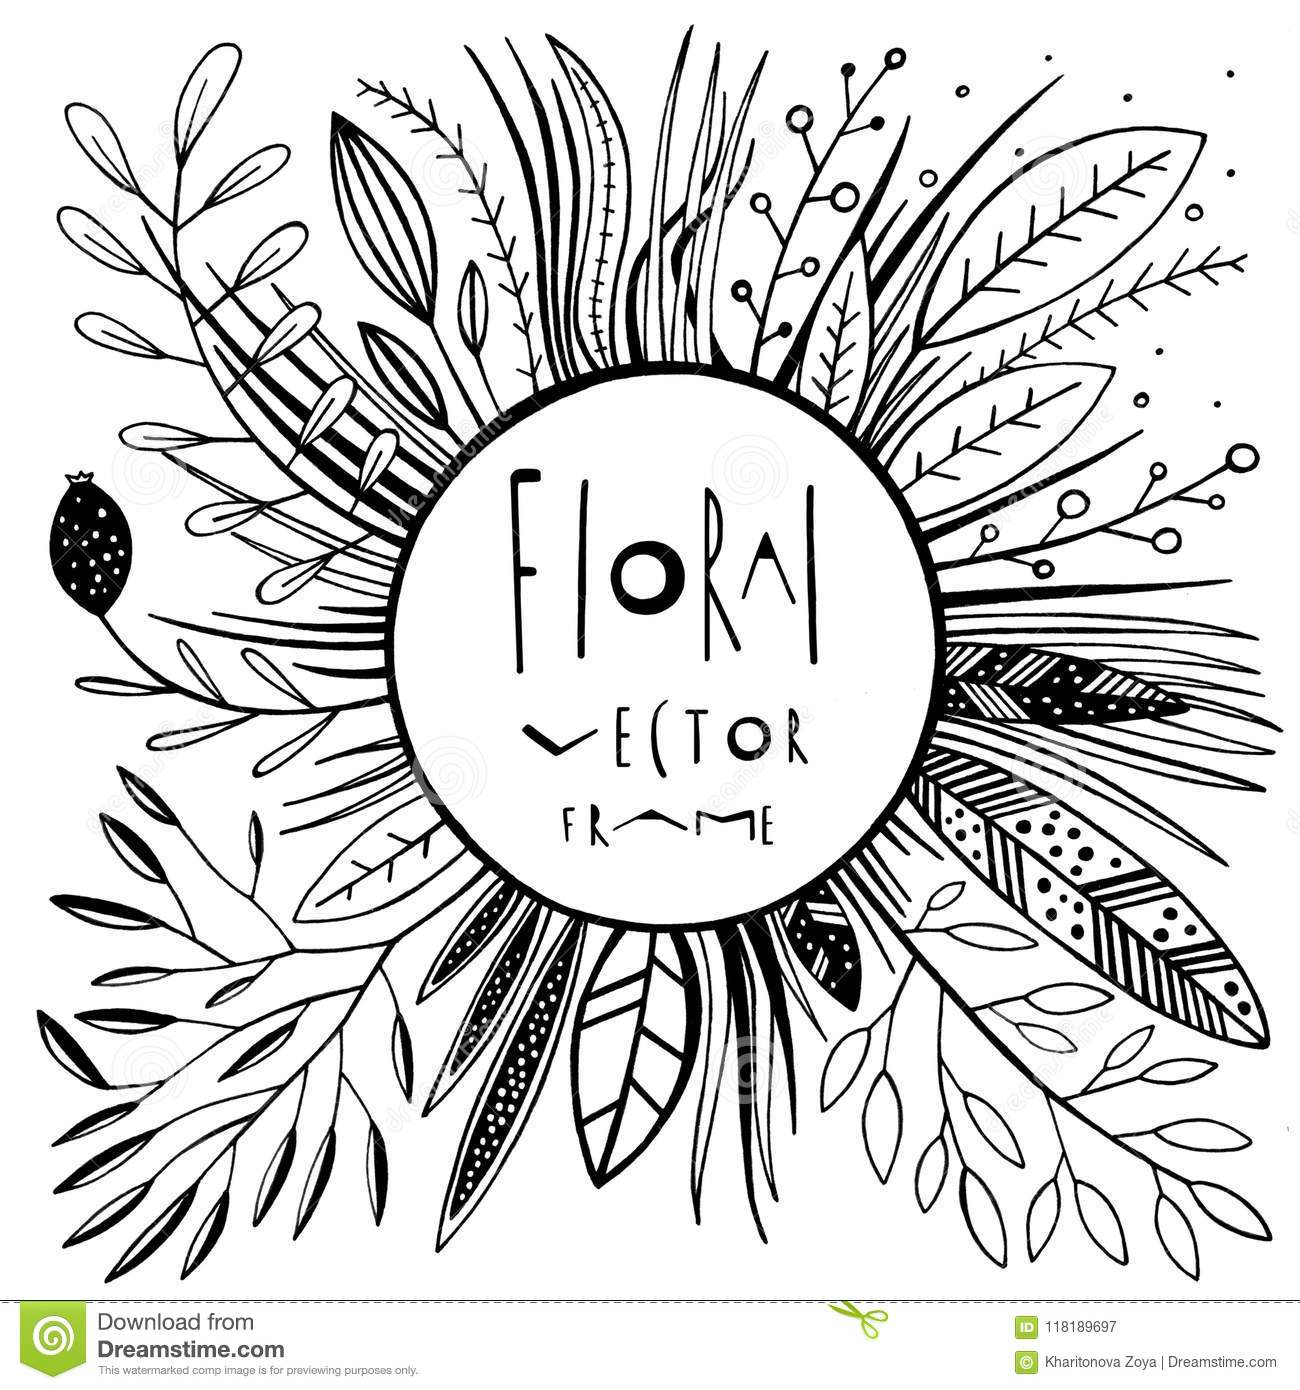 graphic floral vector frame stock vector illustration of doodle botany 118189697 https www dreamstime com hand drawn botanical frame black white nature graphics doodle leaves grass flowers graphic floral vector frame image118189697